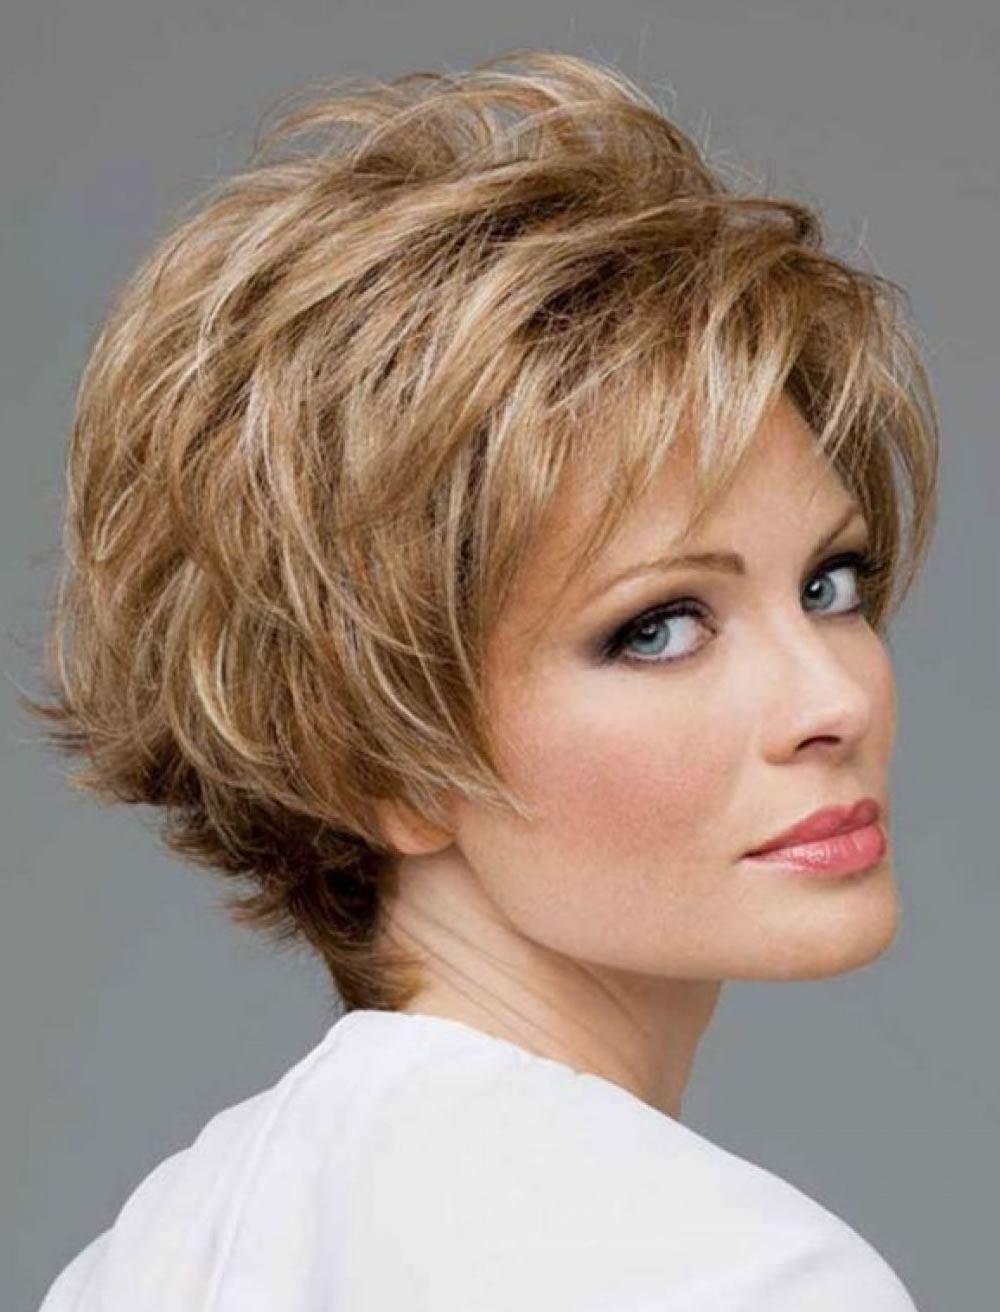 Dashing Short Haircut For 2018 Women Over 40 To 60 – Hairstyles with Short Hairstyle For Over 40